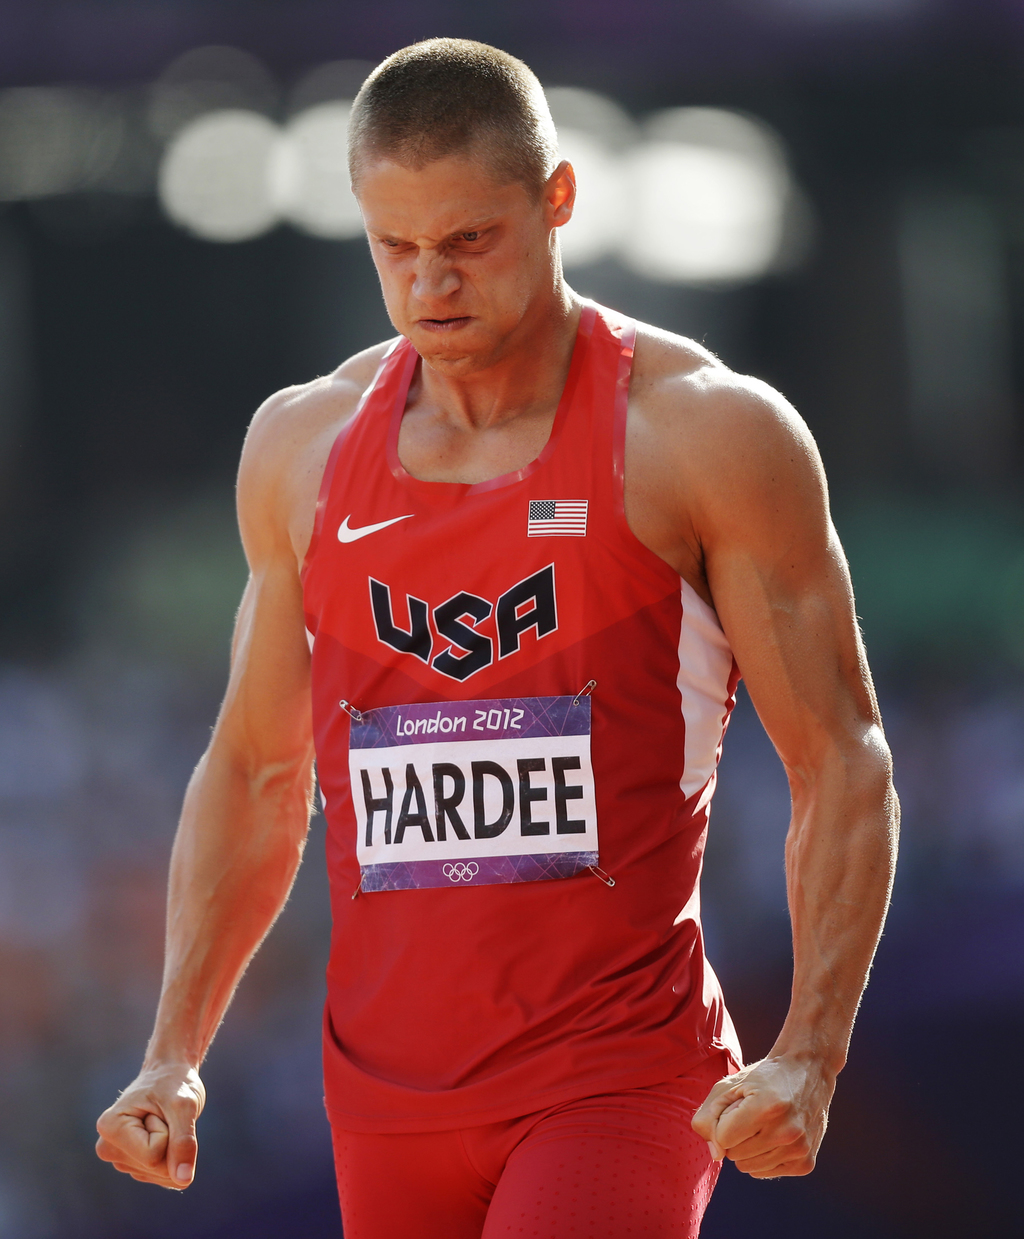 FILE - In this Aug. 9, 2012, file photo, United States' Trey Hardee reacts after competing in a 110-meter hurdles heat of the decathlon at the 2012 Su...